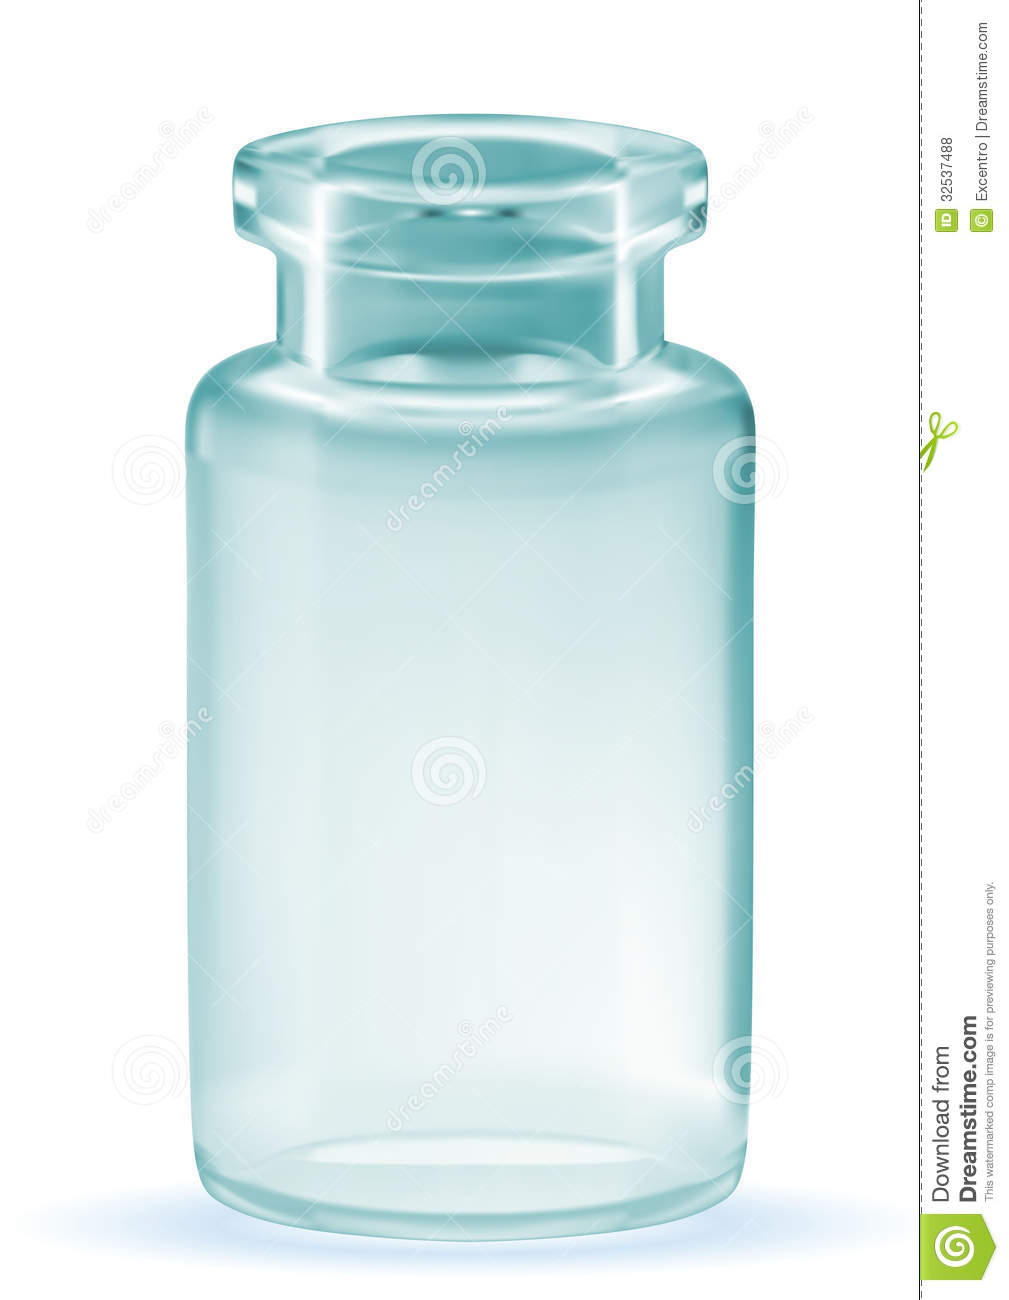 medical-bottle-transparent-glass-32537488.jpg